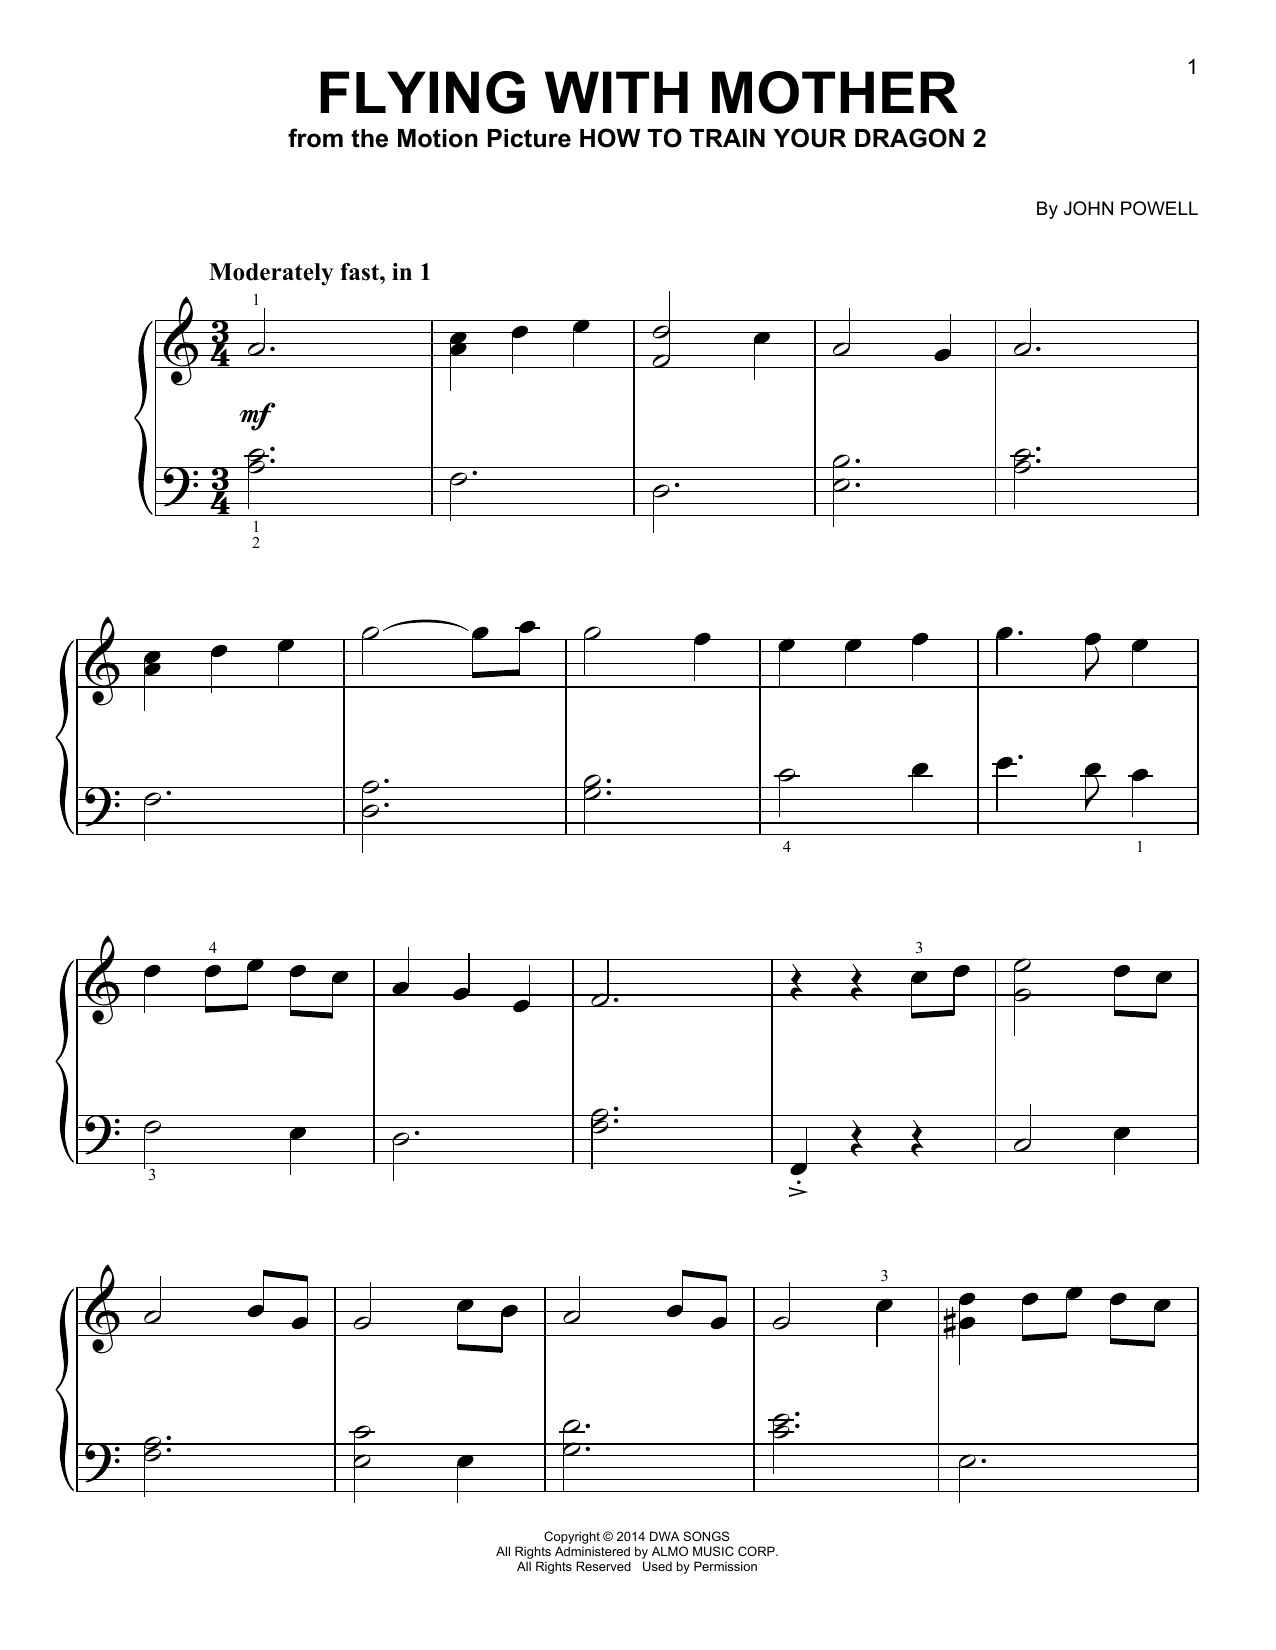 John Powell Flying With Mother (from How to Train Your Dragon) sheet music notes and chords